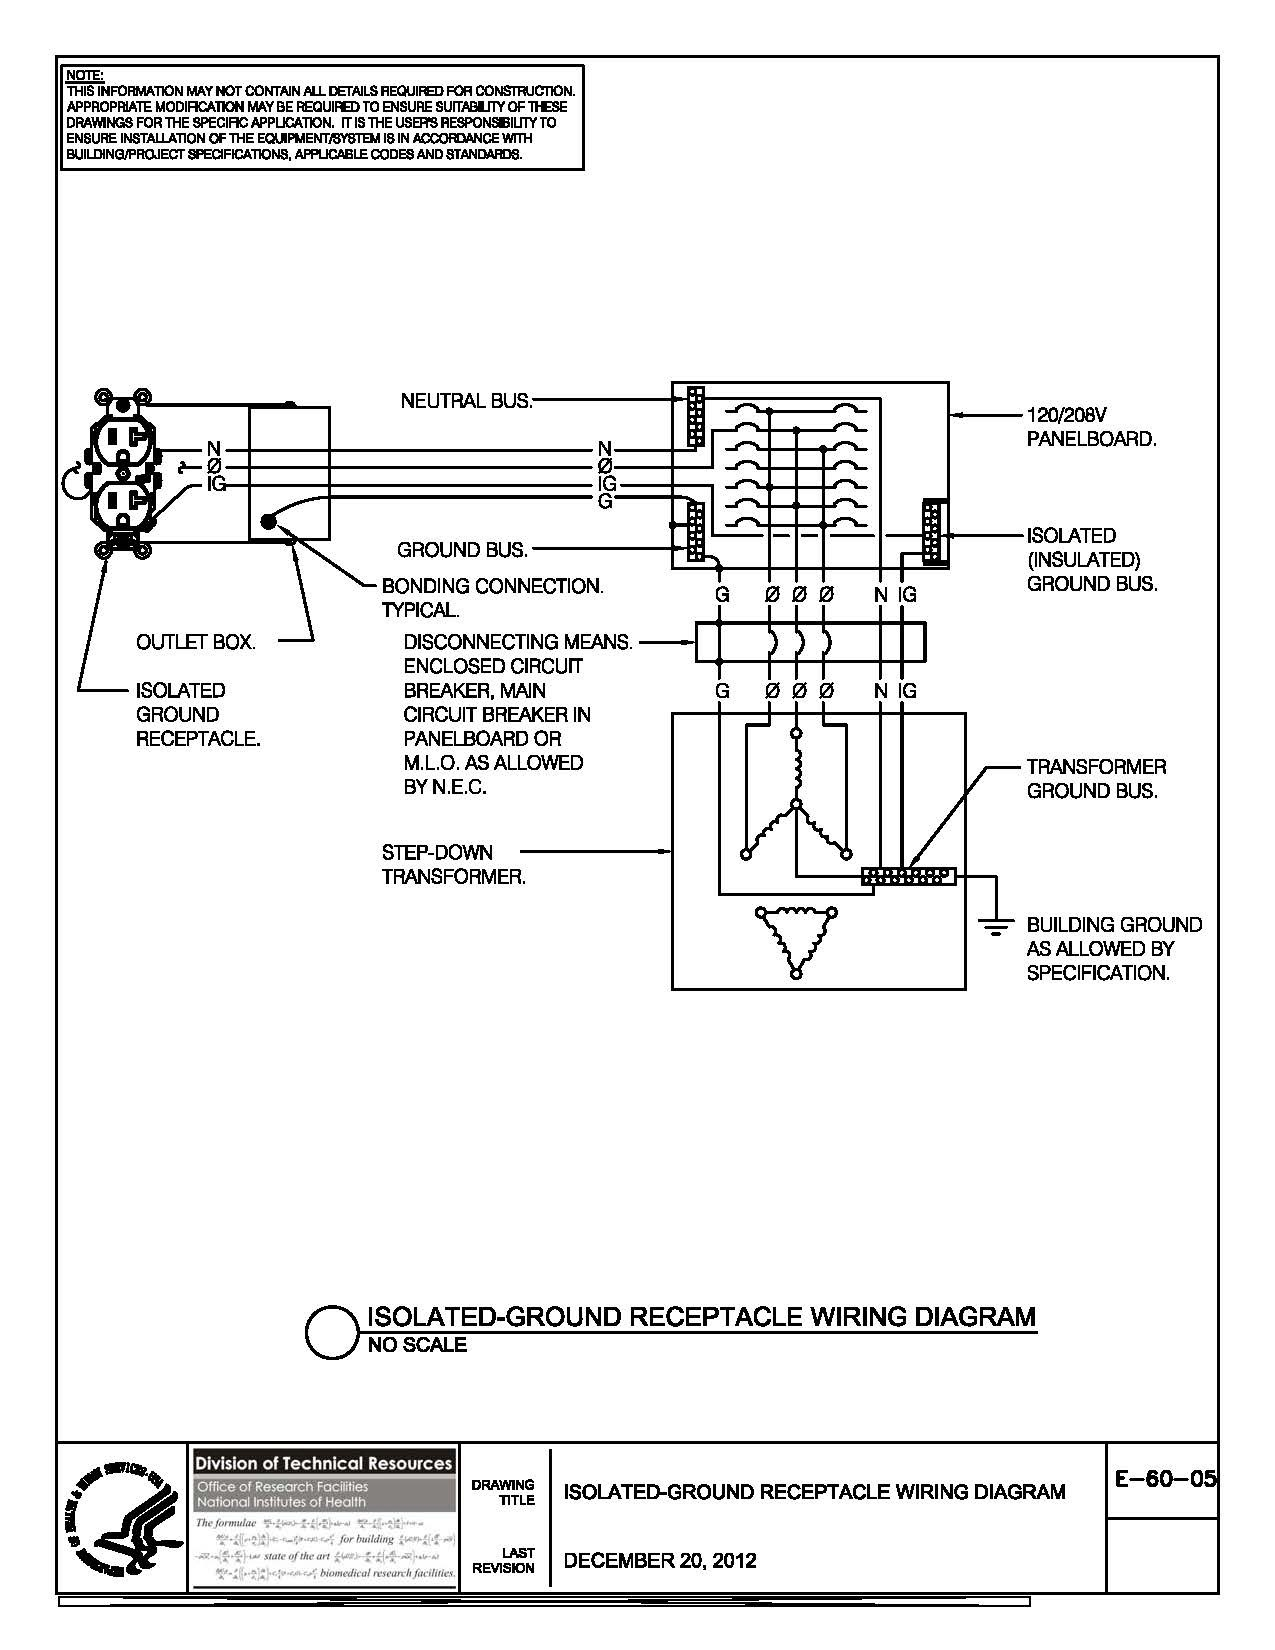 isolation transformer wiring diagram Download-3 Phase isolation Transformer Wiring Diagram Wiring Diagram Ac 3 Phase Refrence Electrical Transformer Wiring 8-o